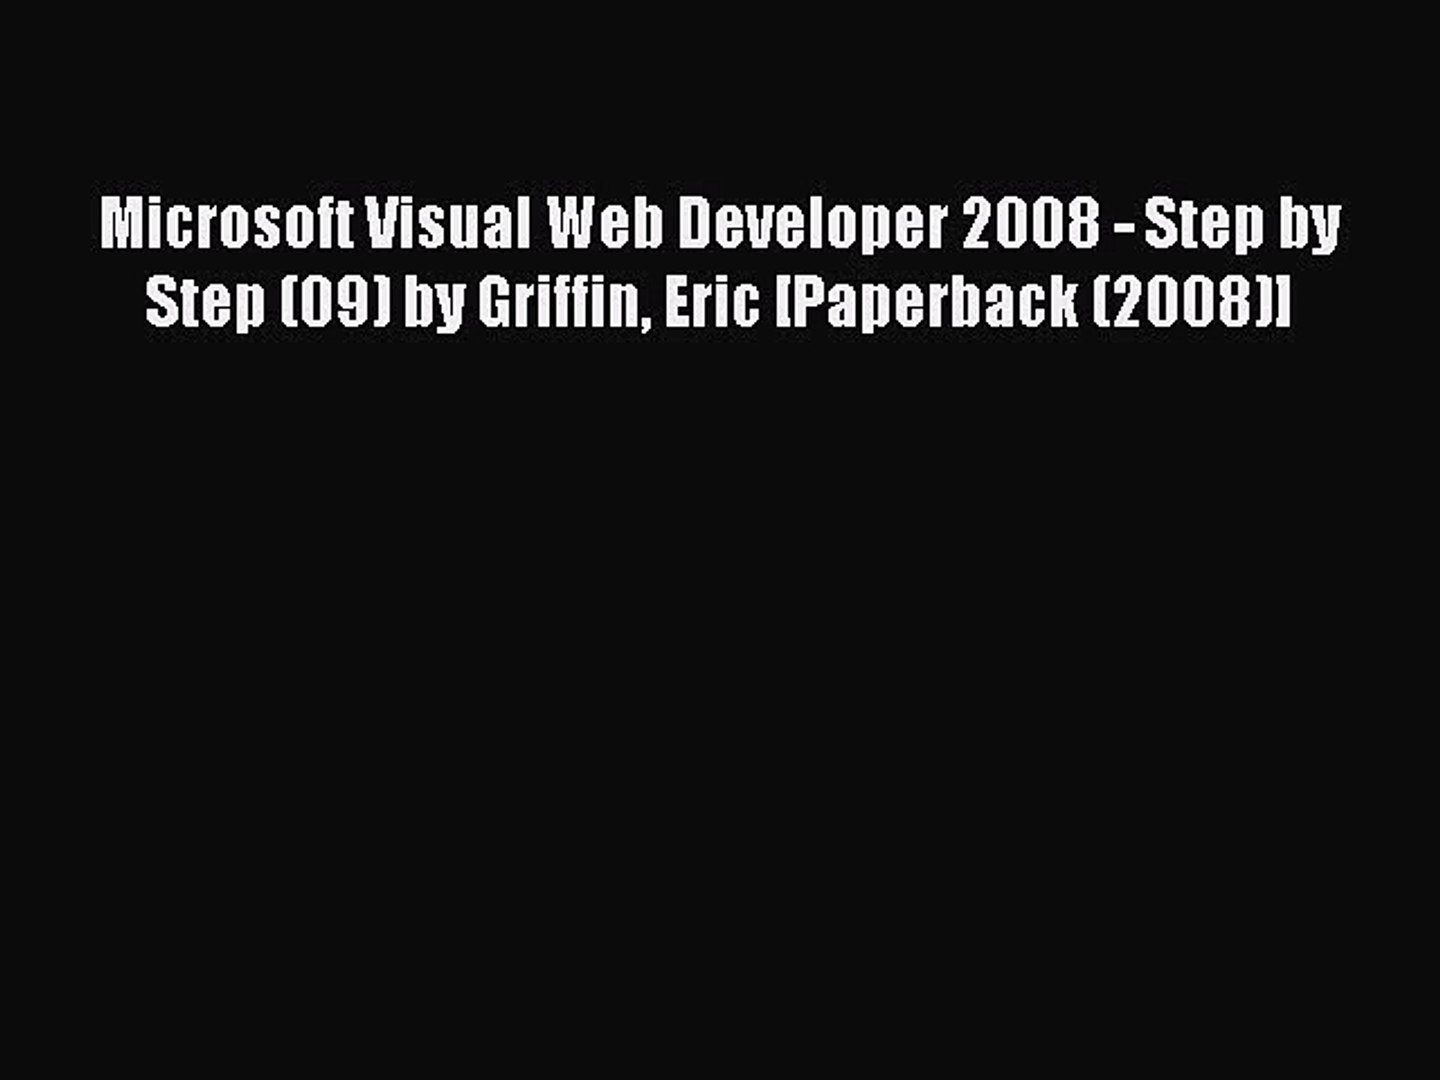 Read Microsoft Visual Web Developer 2008 - Step by Step (09) by Griffin Eric [Paperback (2008)]